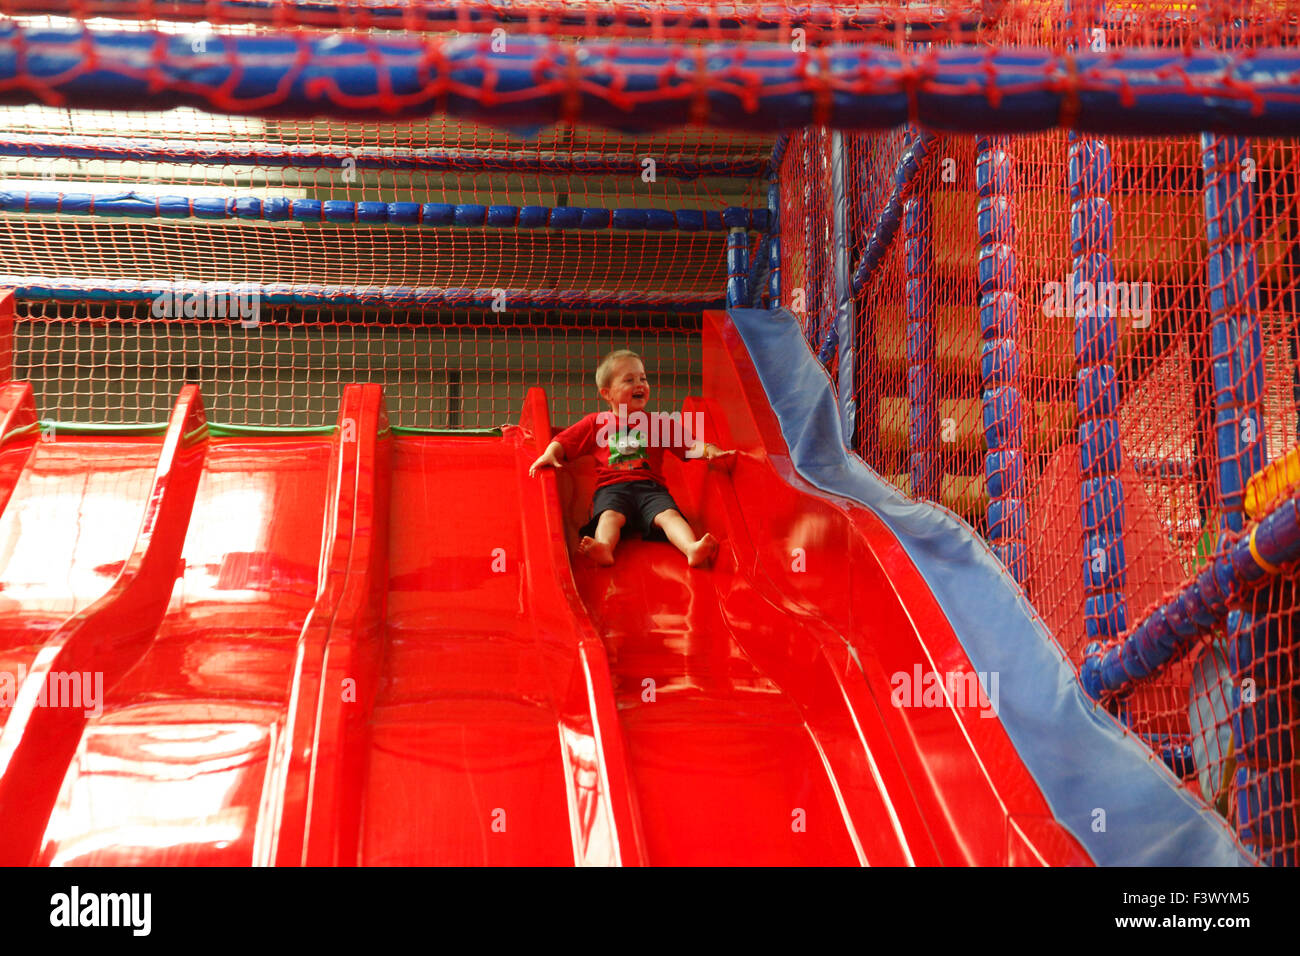 Young boy coming down slide in playbarn - Stock Image